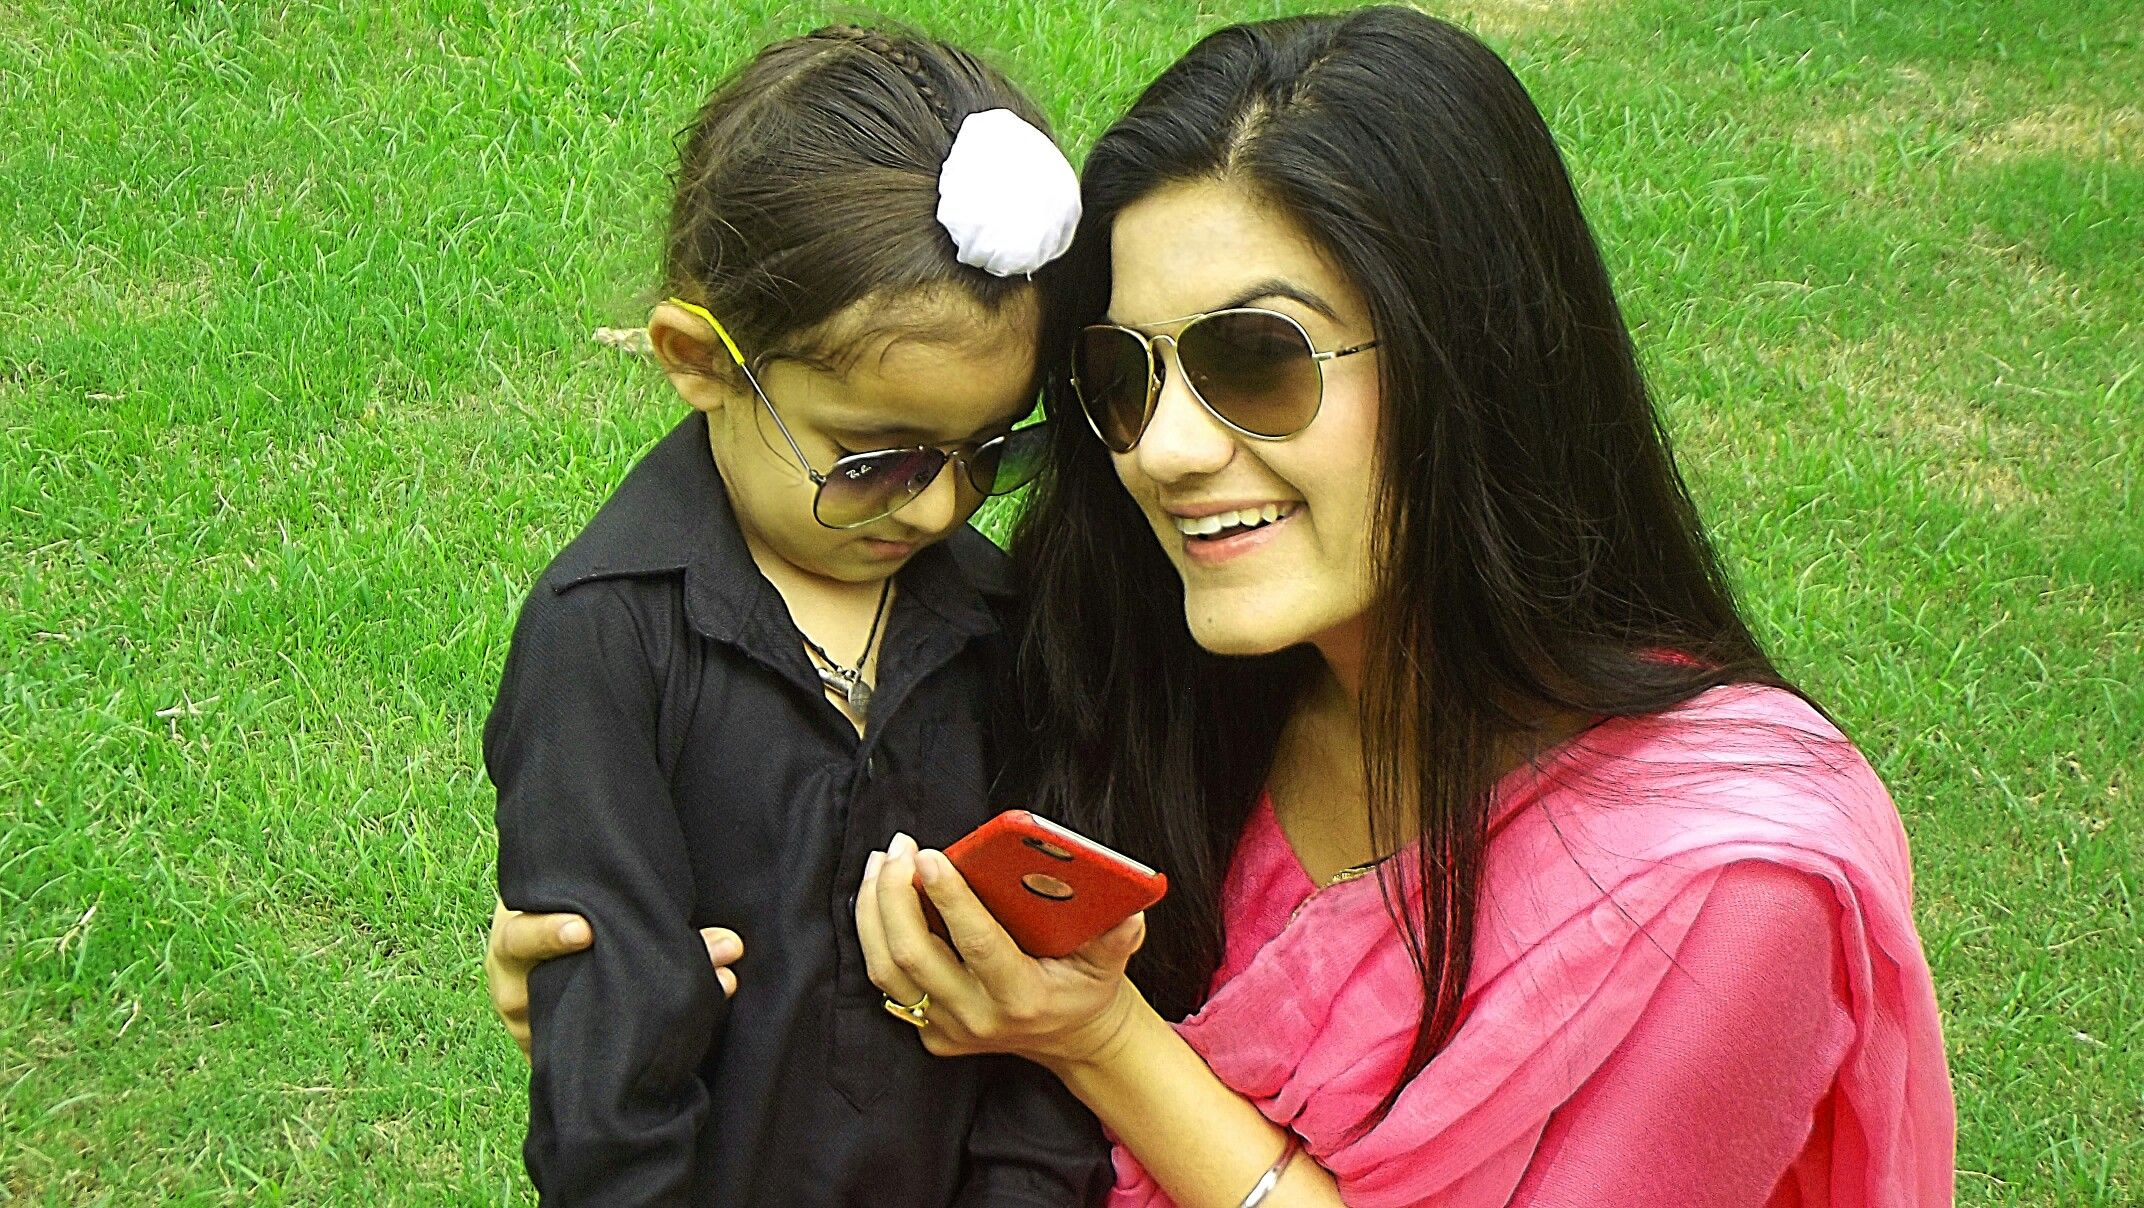 Pin By Inder Deol On Cute Sardar Baby Pinterest